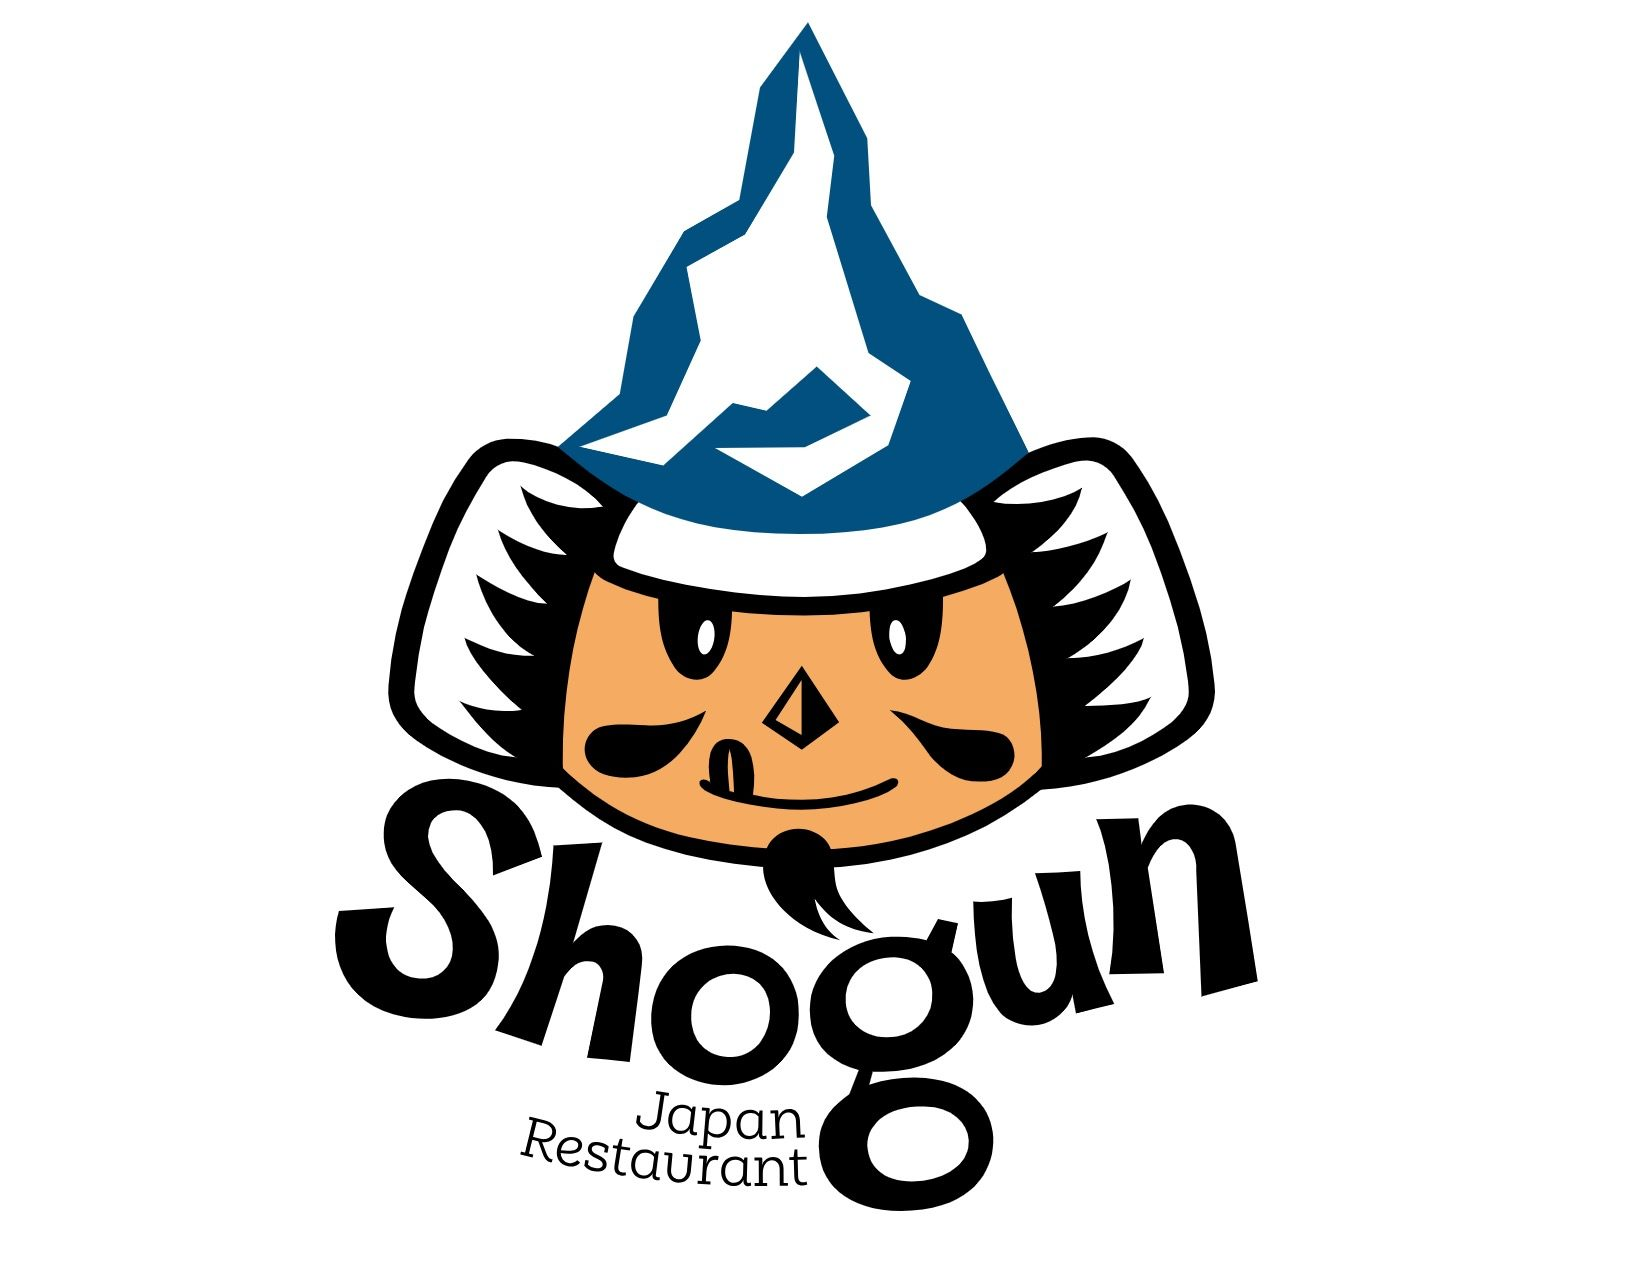 Shogun Japan Restaurant Zermatt